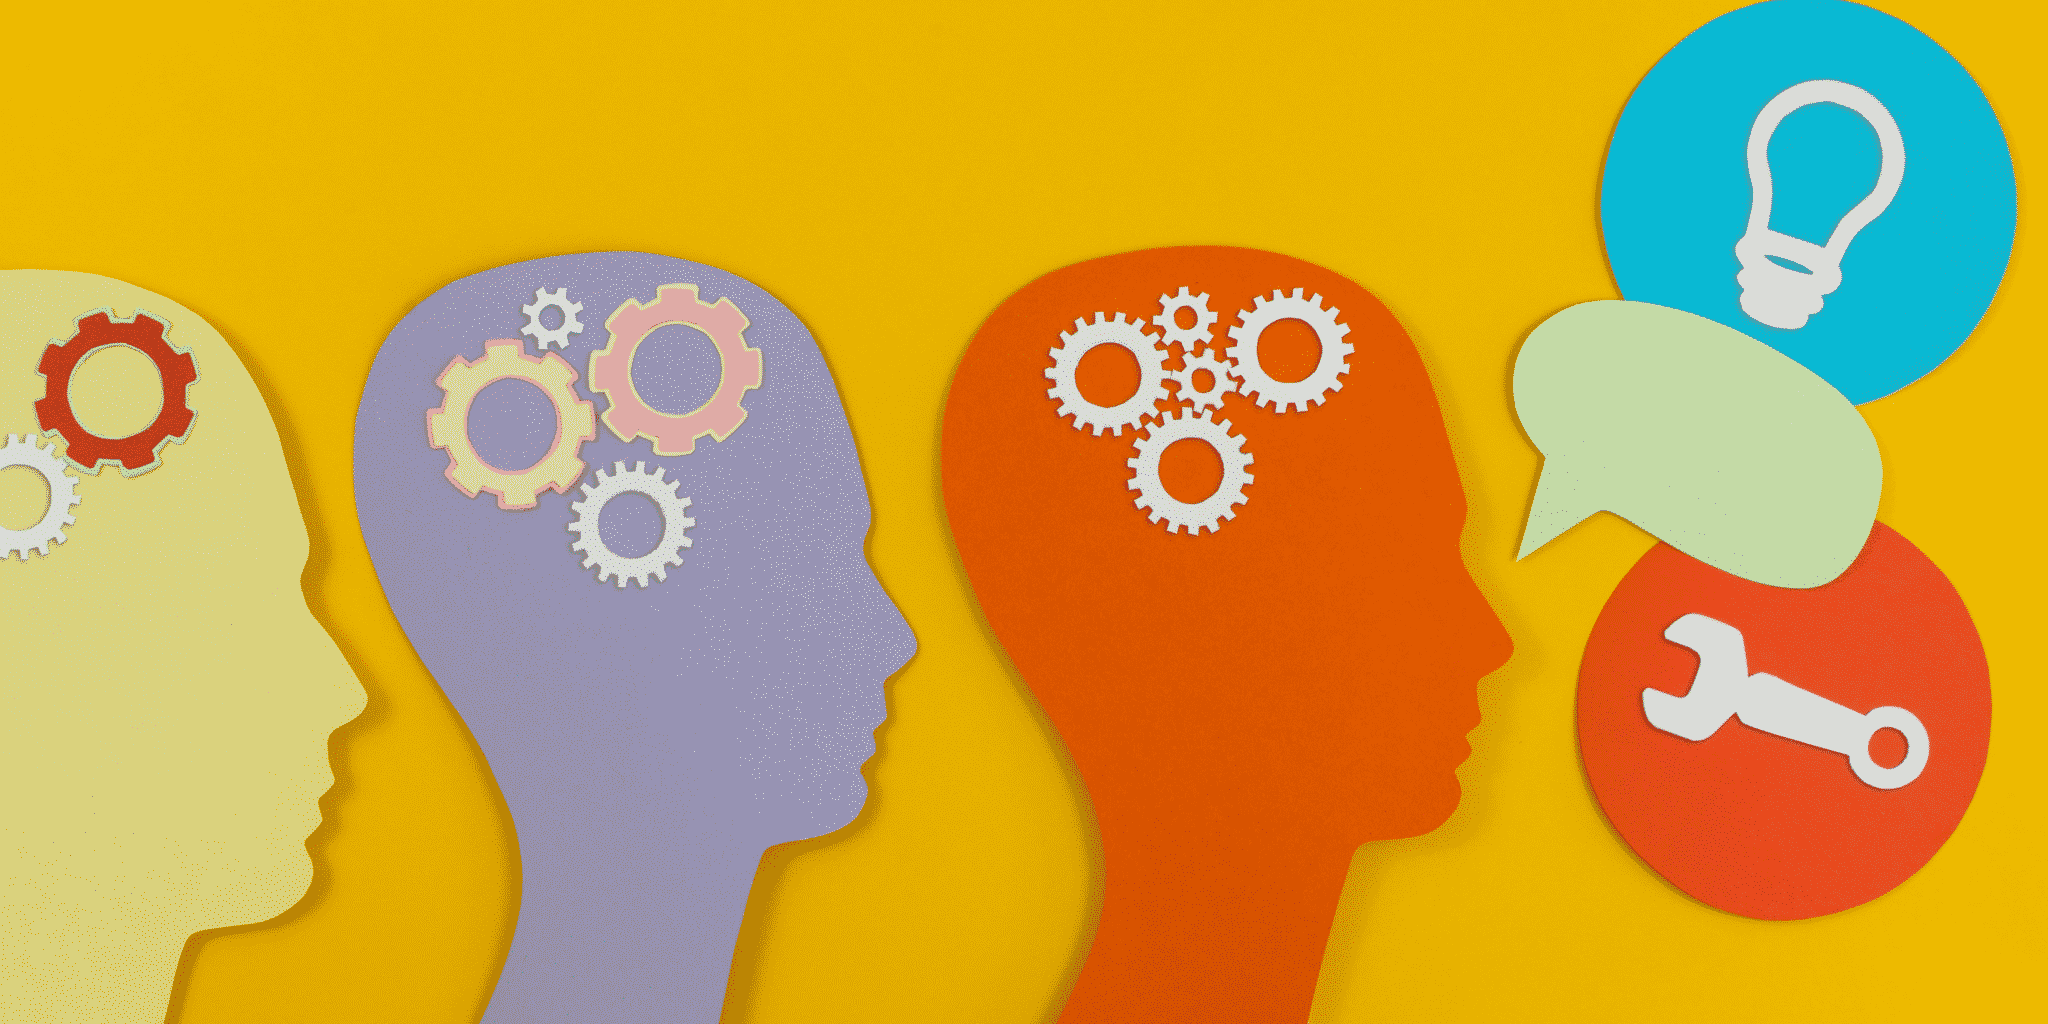 Picture of silhouettes of heads with gears communicating with each other in a yellow background.